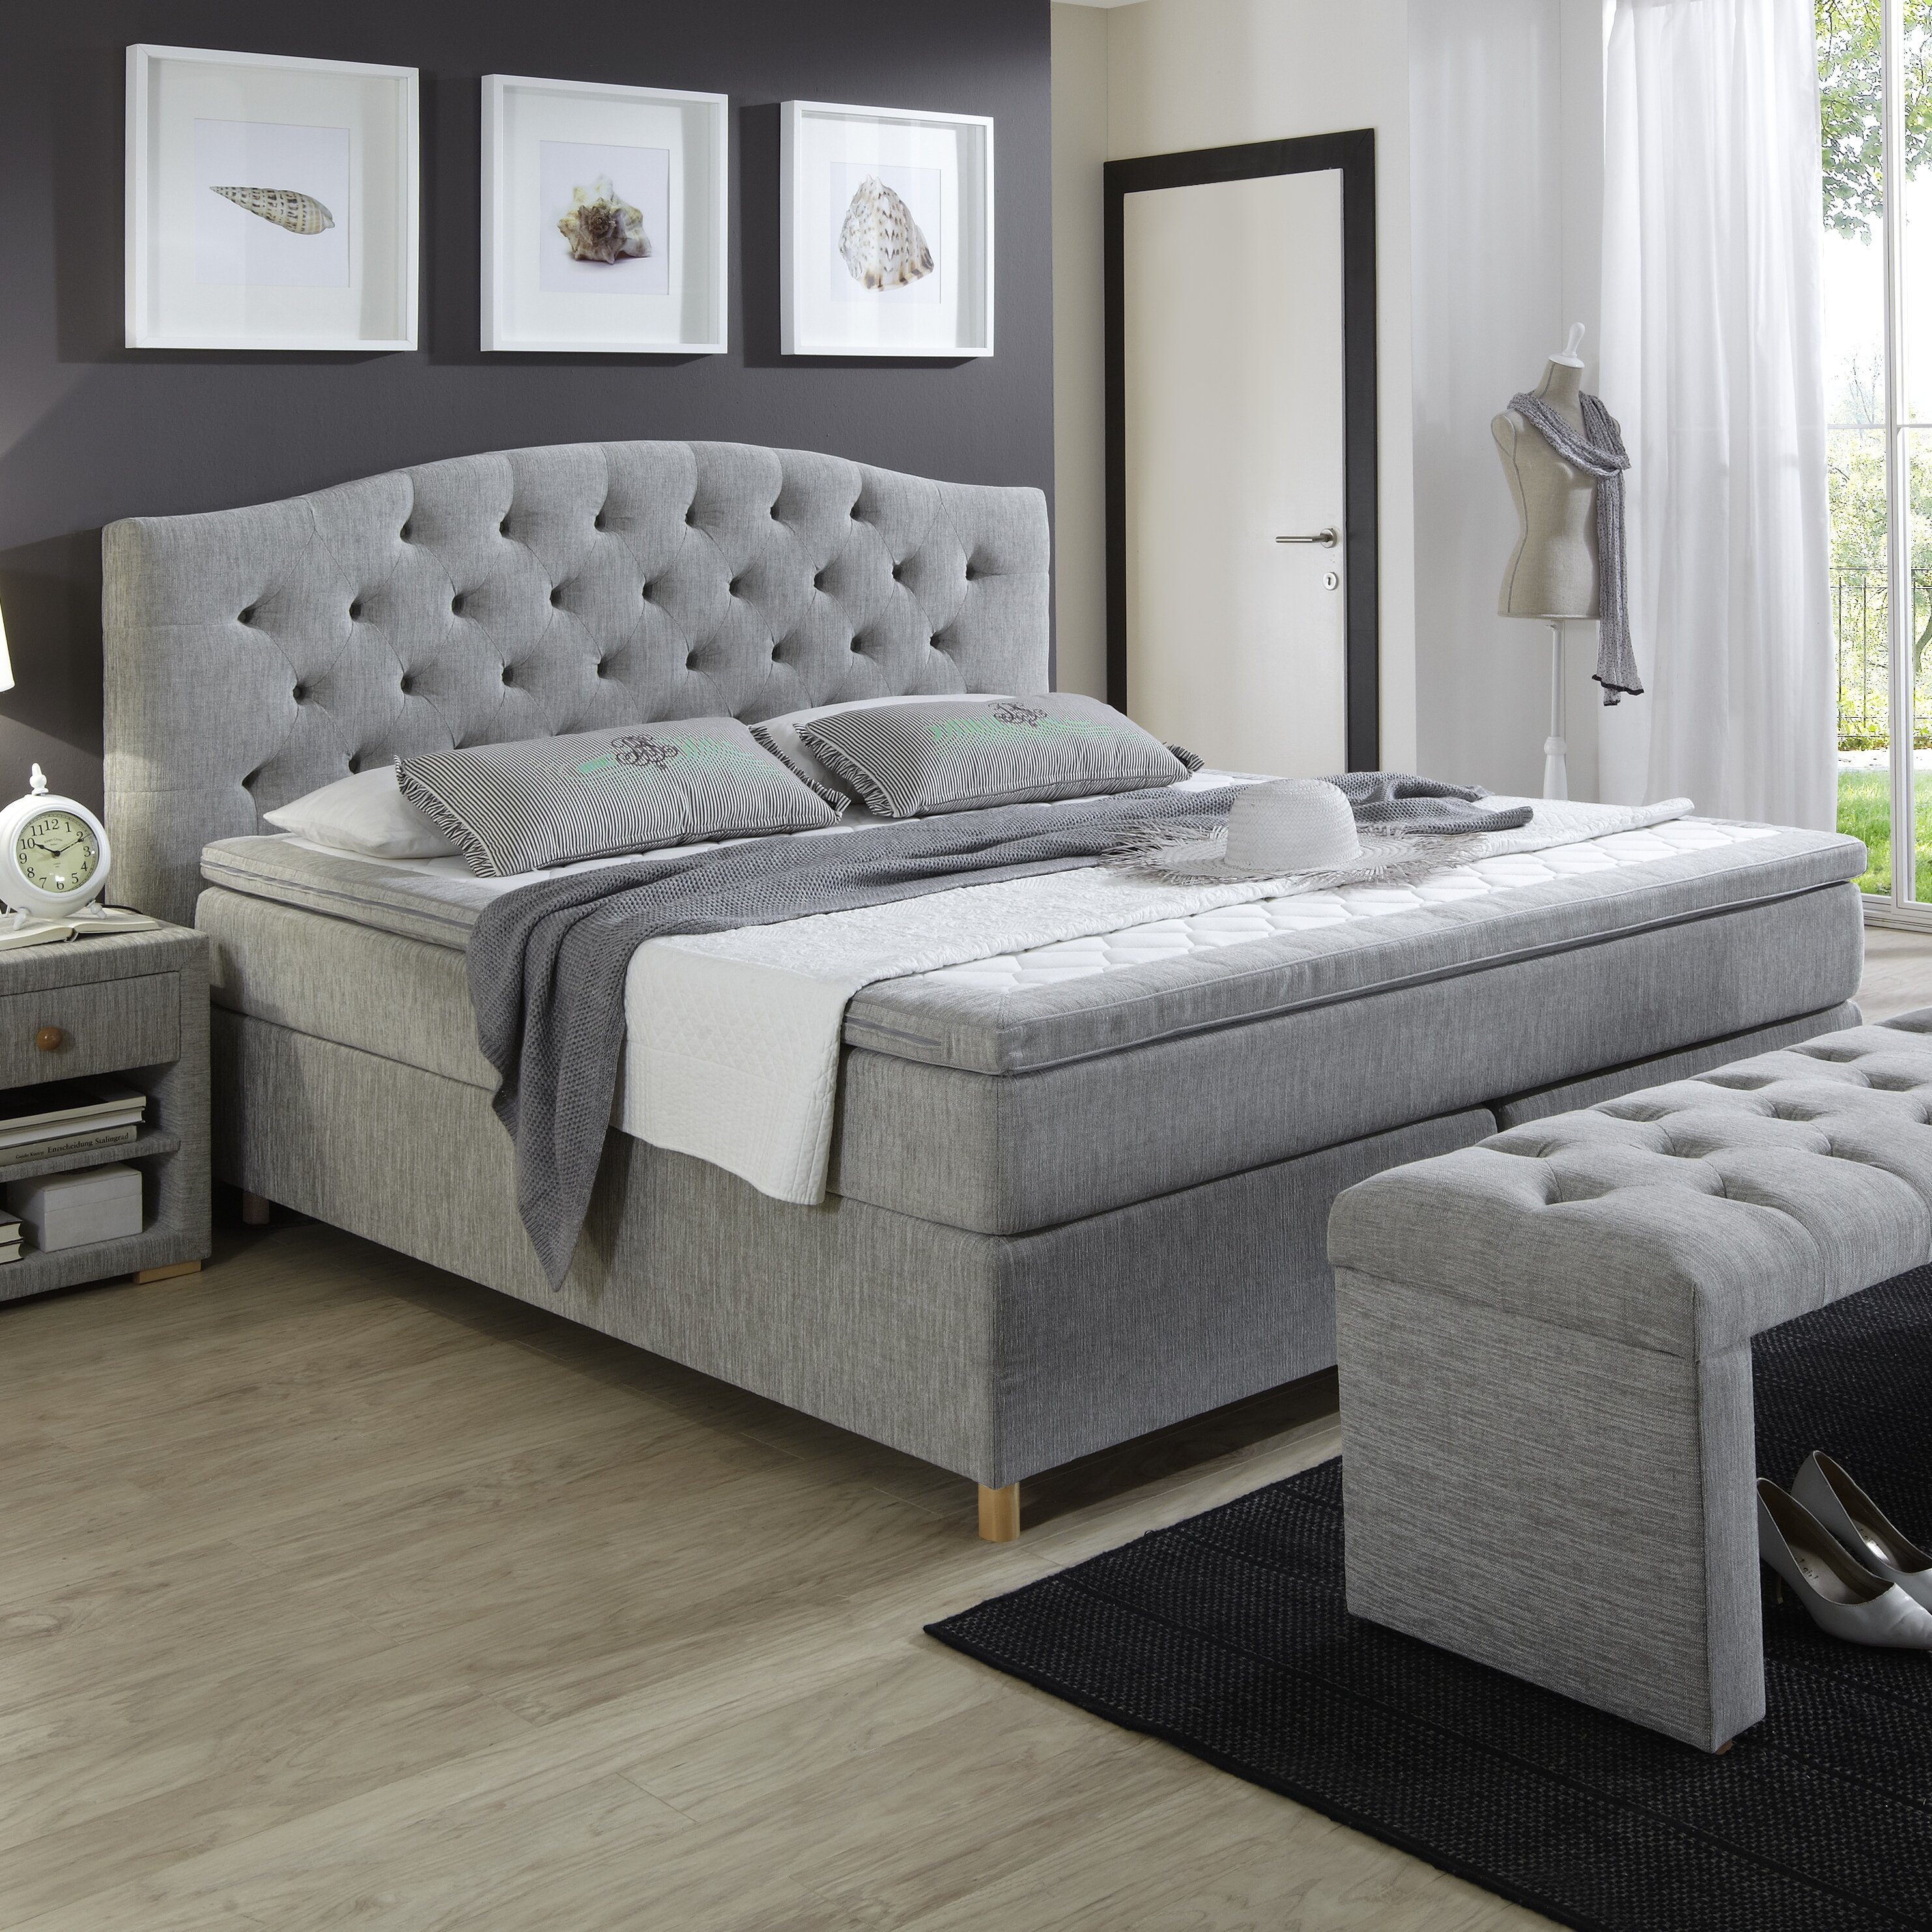 Atlantic Home Collection Boxspringbett Claire mit Topper, 180 x 200 ...